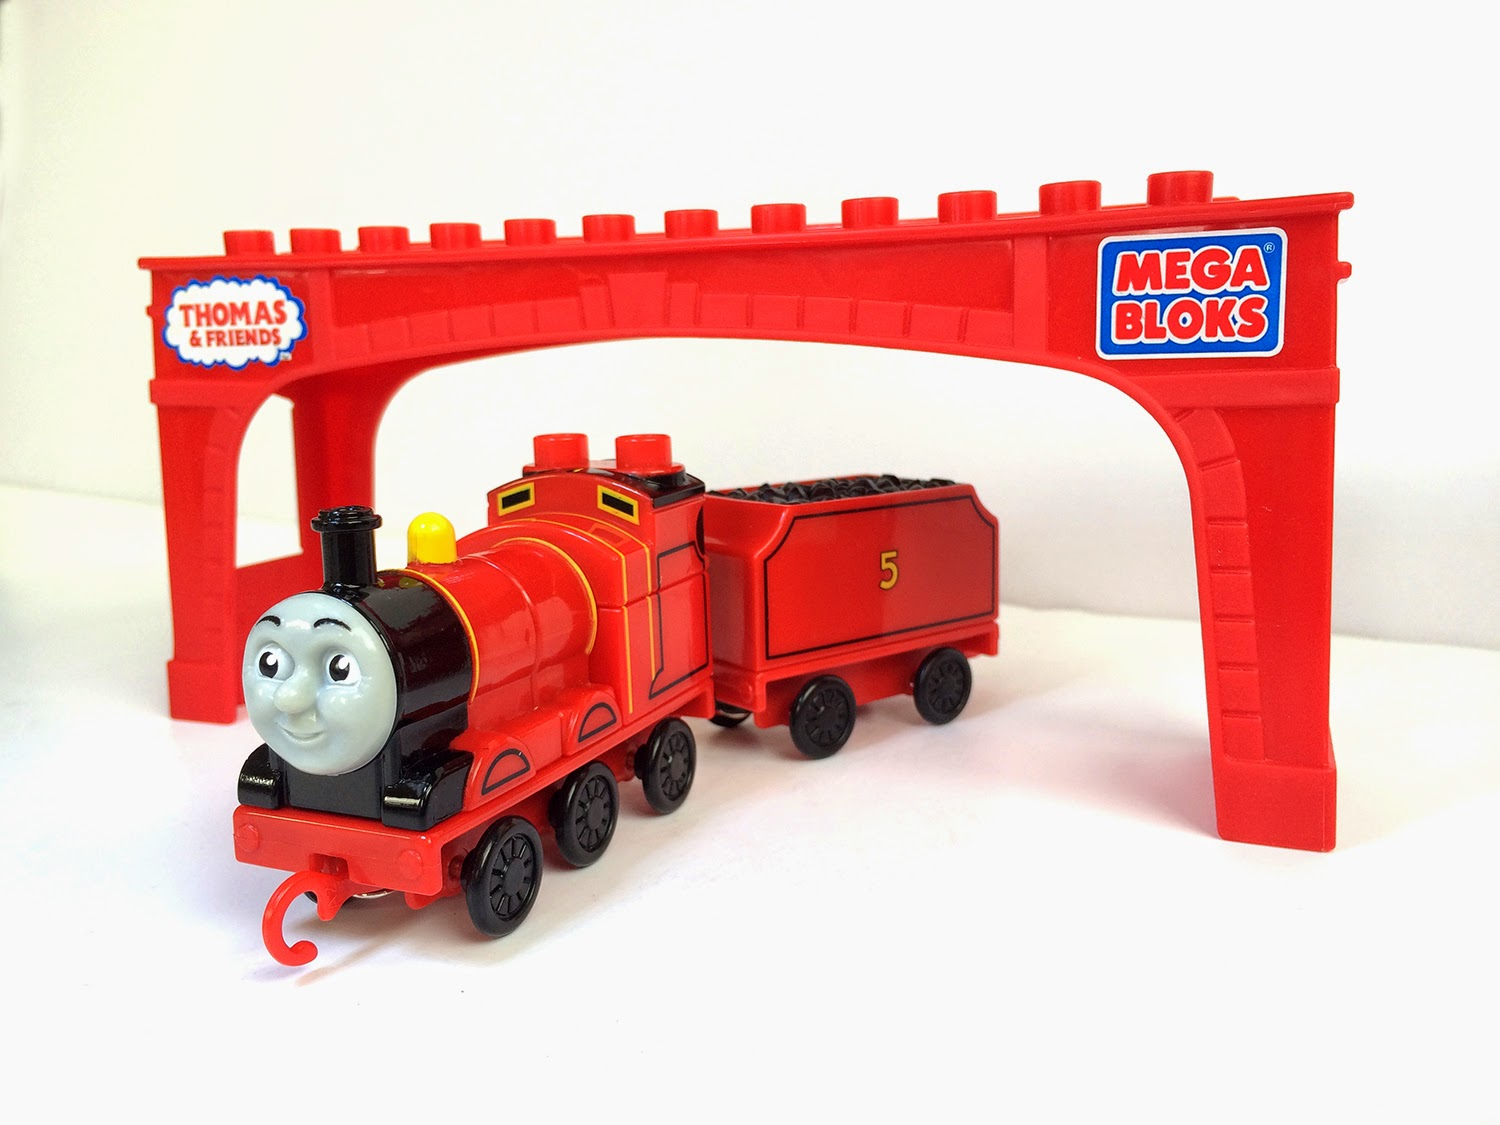 James - Thomas and Friends Mega Bloks Trains